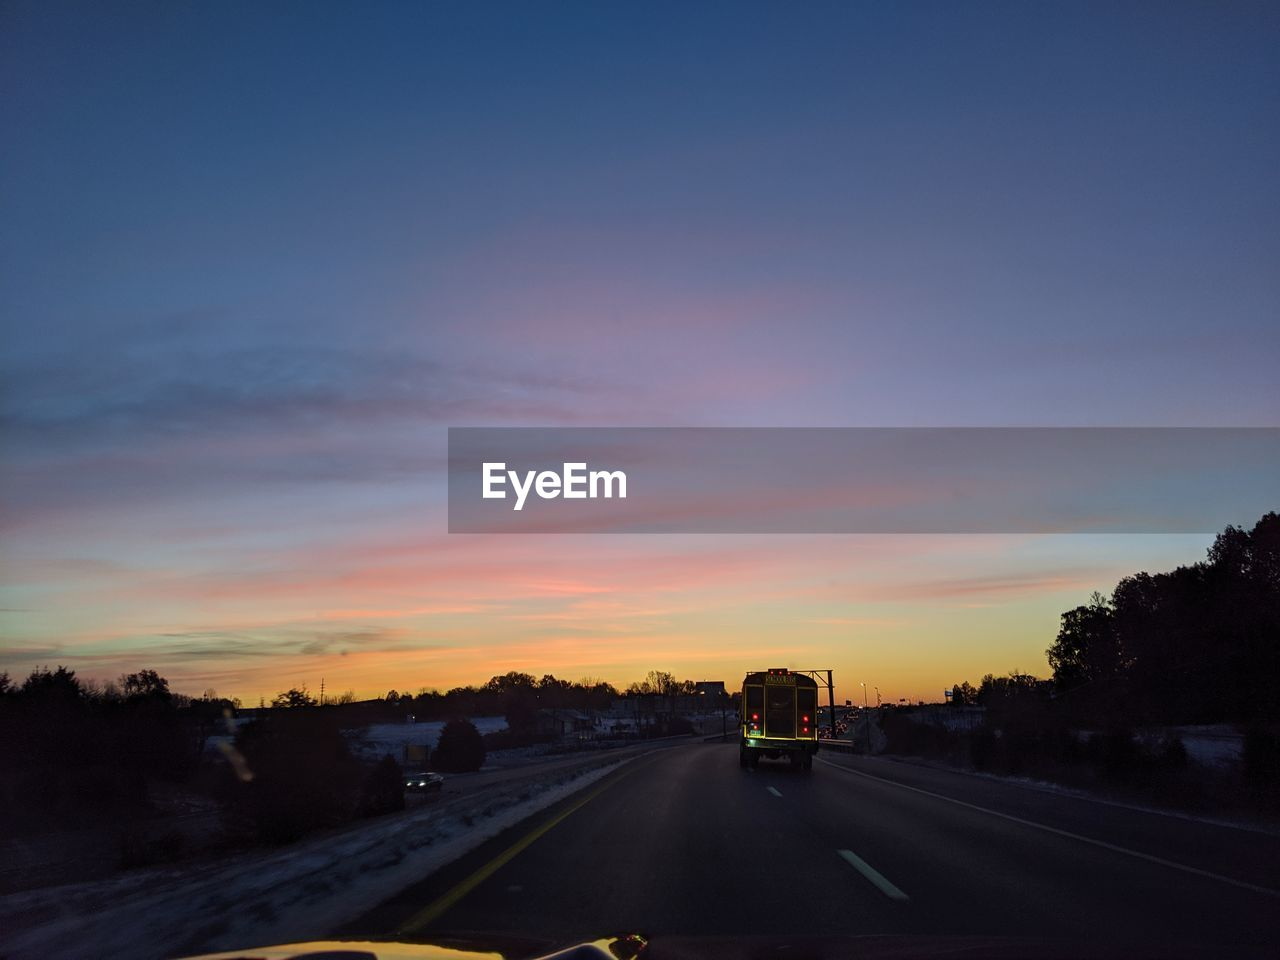 sky, transportation, sunset, road, cloud - sky, the way forward, direction, mode of transportation, nature, no people, car, motor vehicle, land vehicle, orange color, tree, motion, on the move, highway, plant, diminishing perspective, outdoors, multiple lane highway